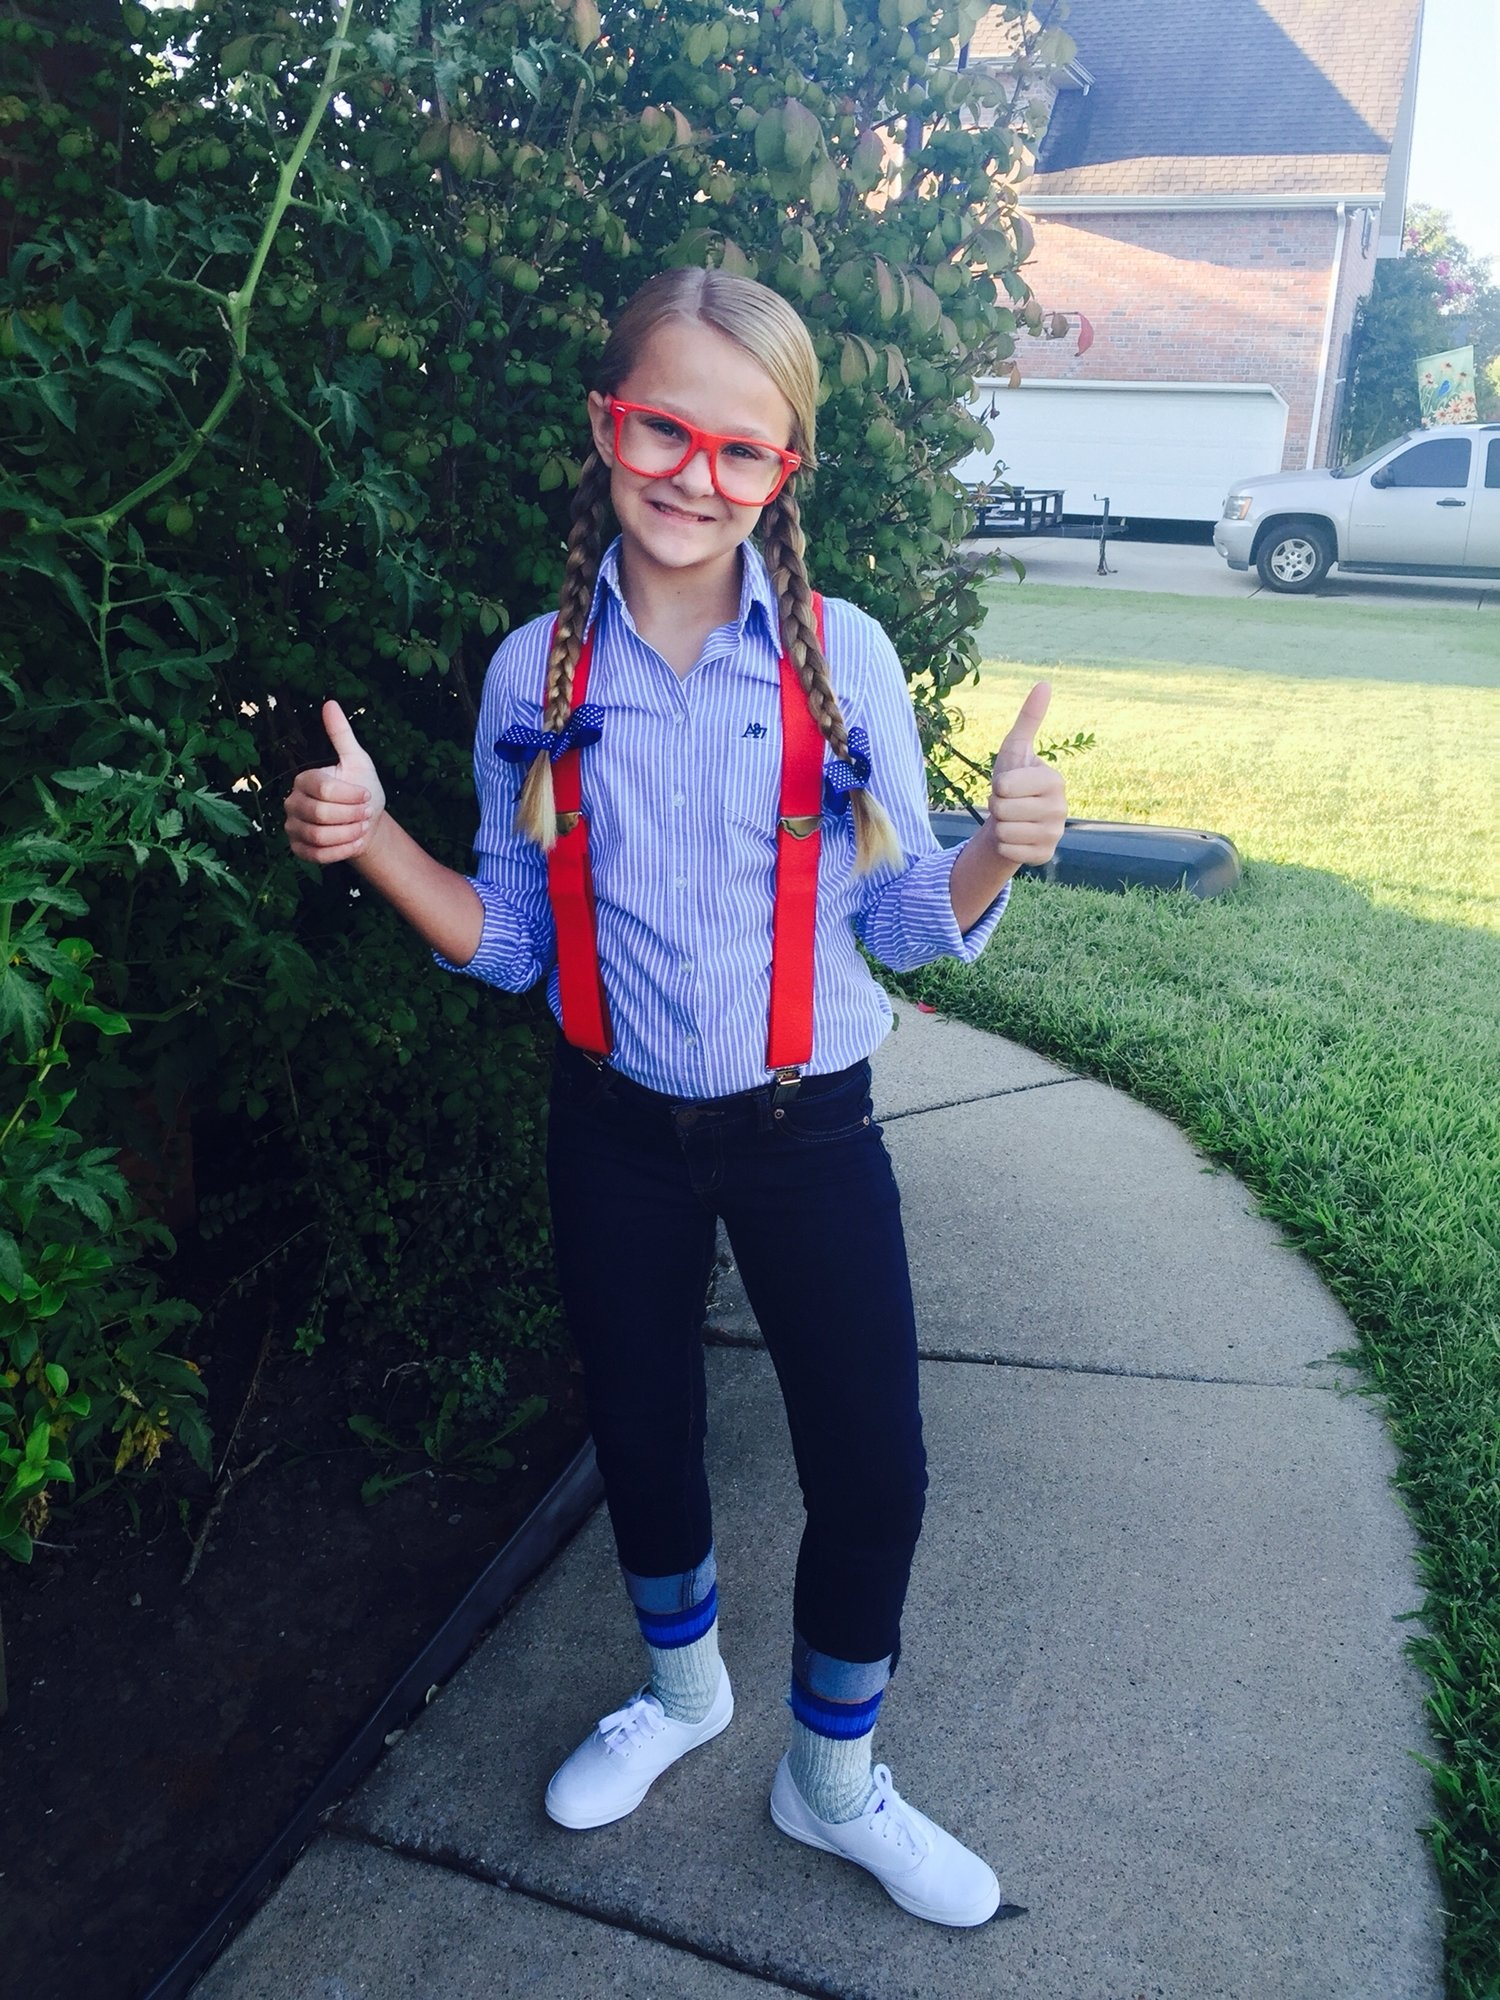 nerd day at school | abree | pinterest | school, costumes and